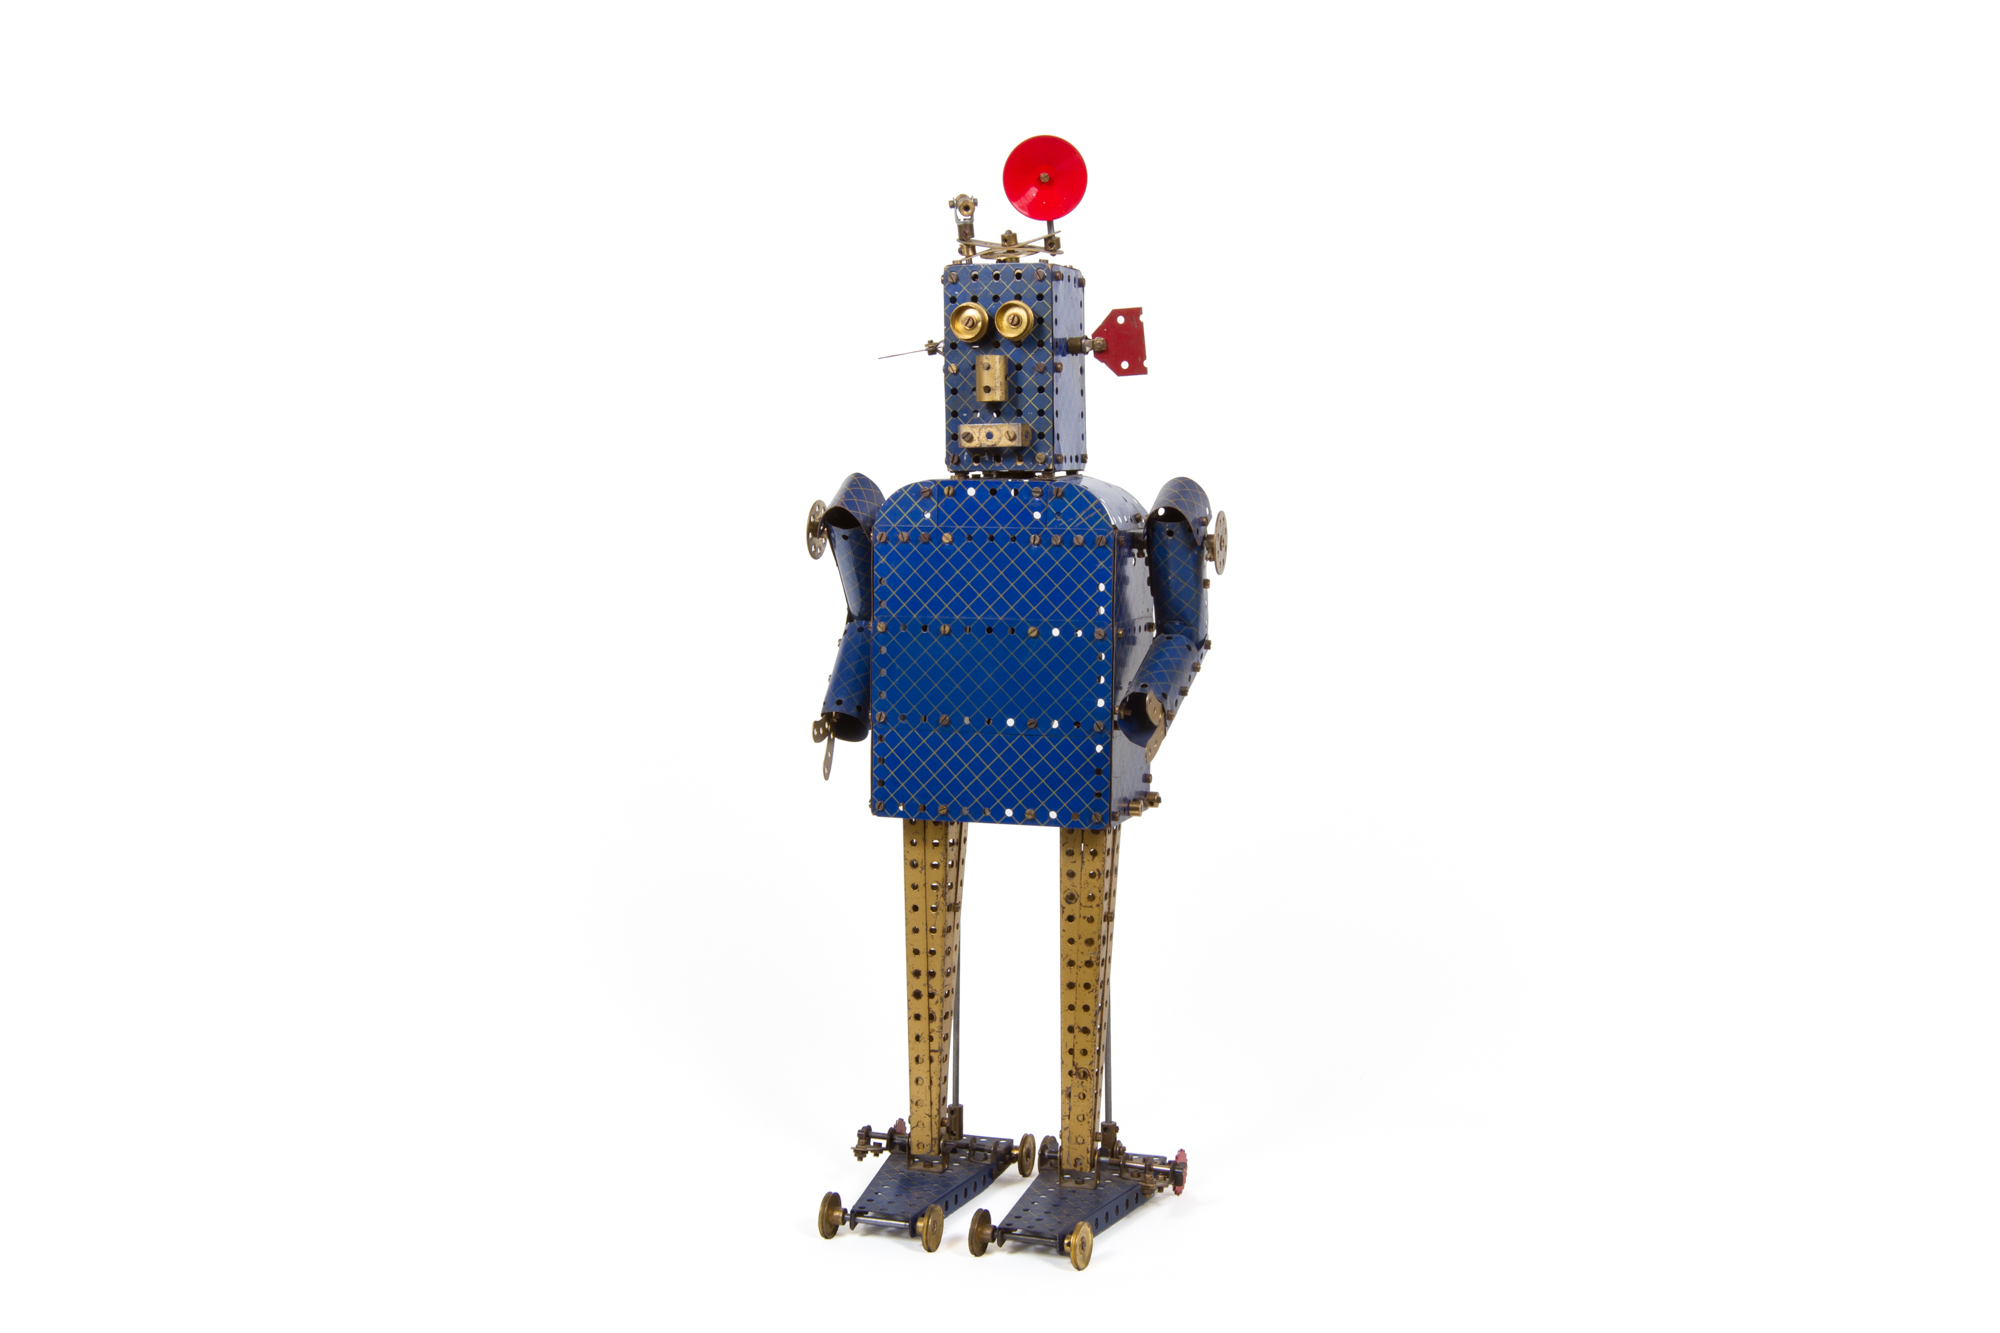 Construction Kit Robot (Meccano – age unknown) - Height 2'1""